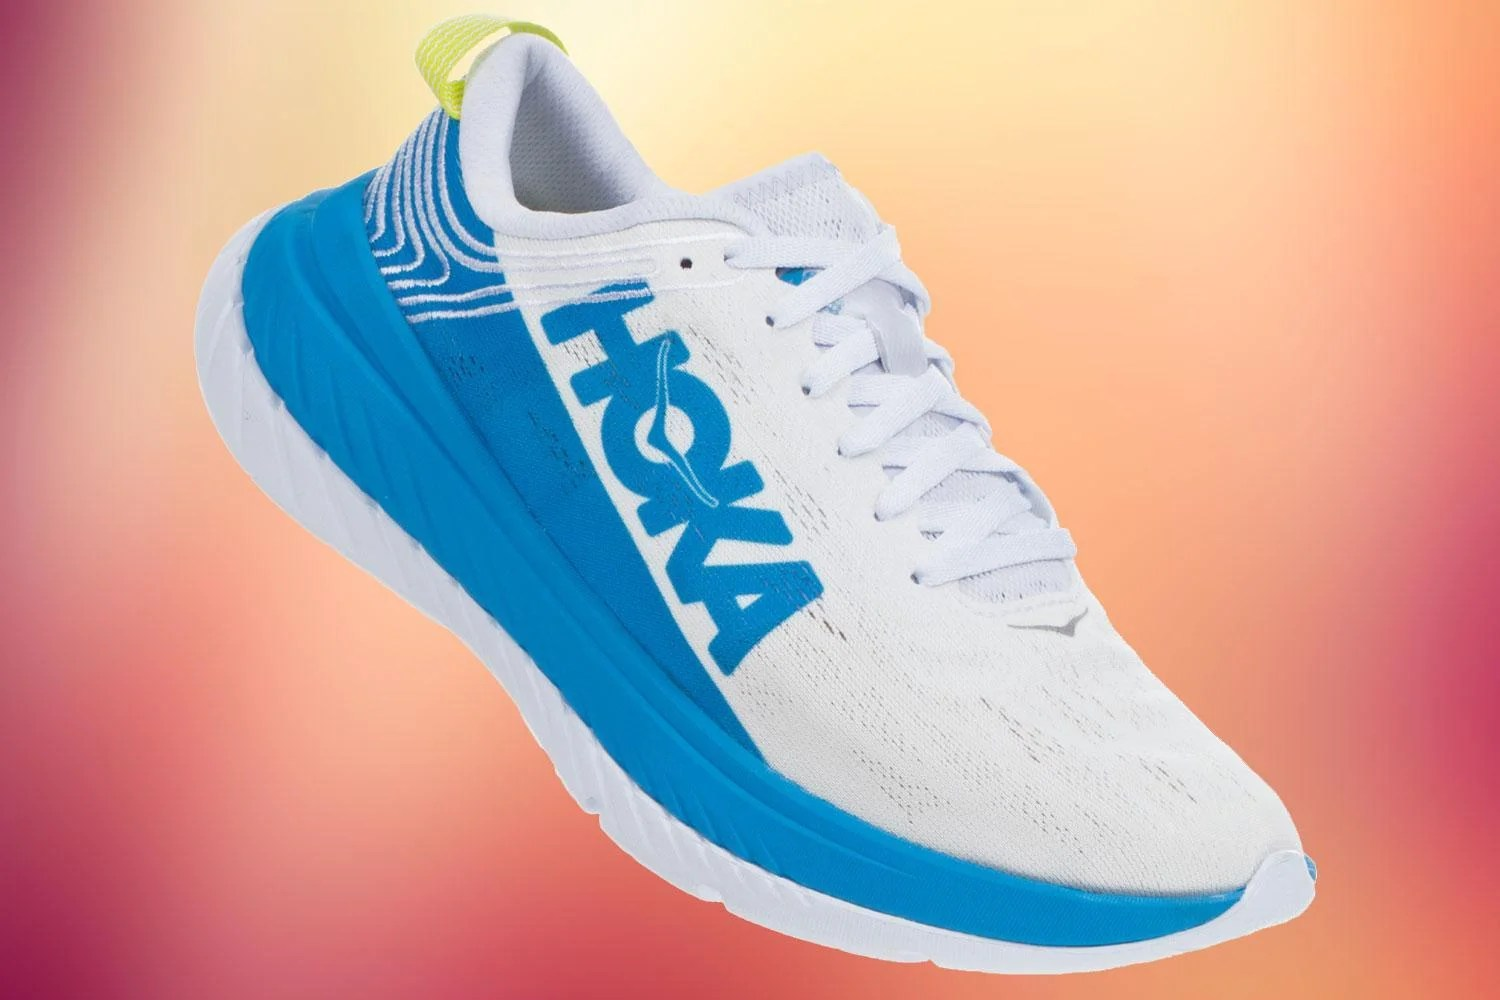 Hoka One One Carbon X Review The Carbon Crafted Racing